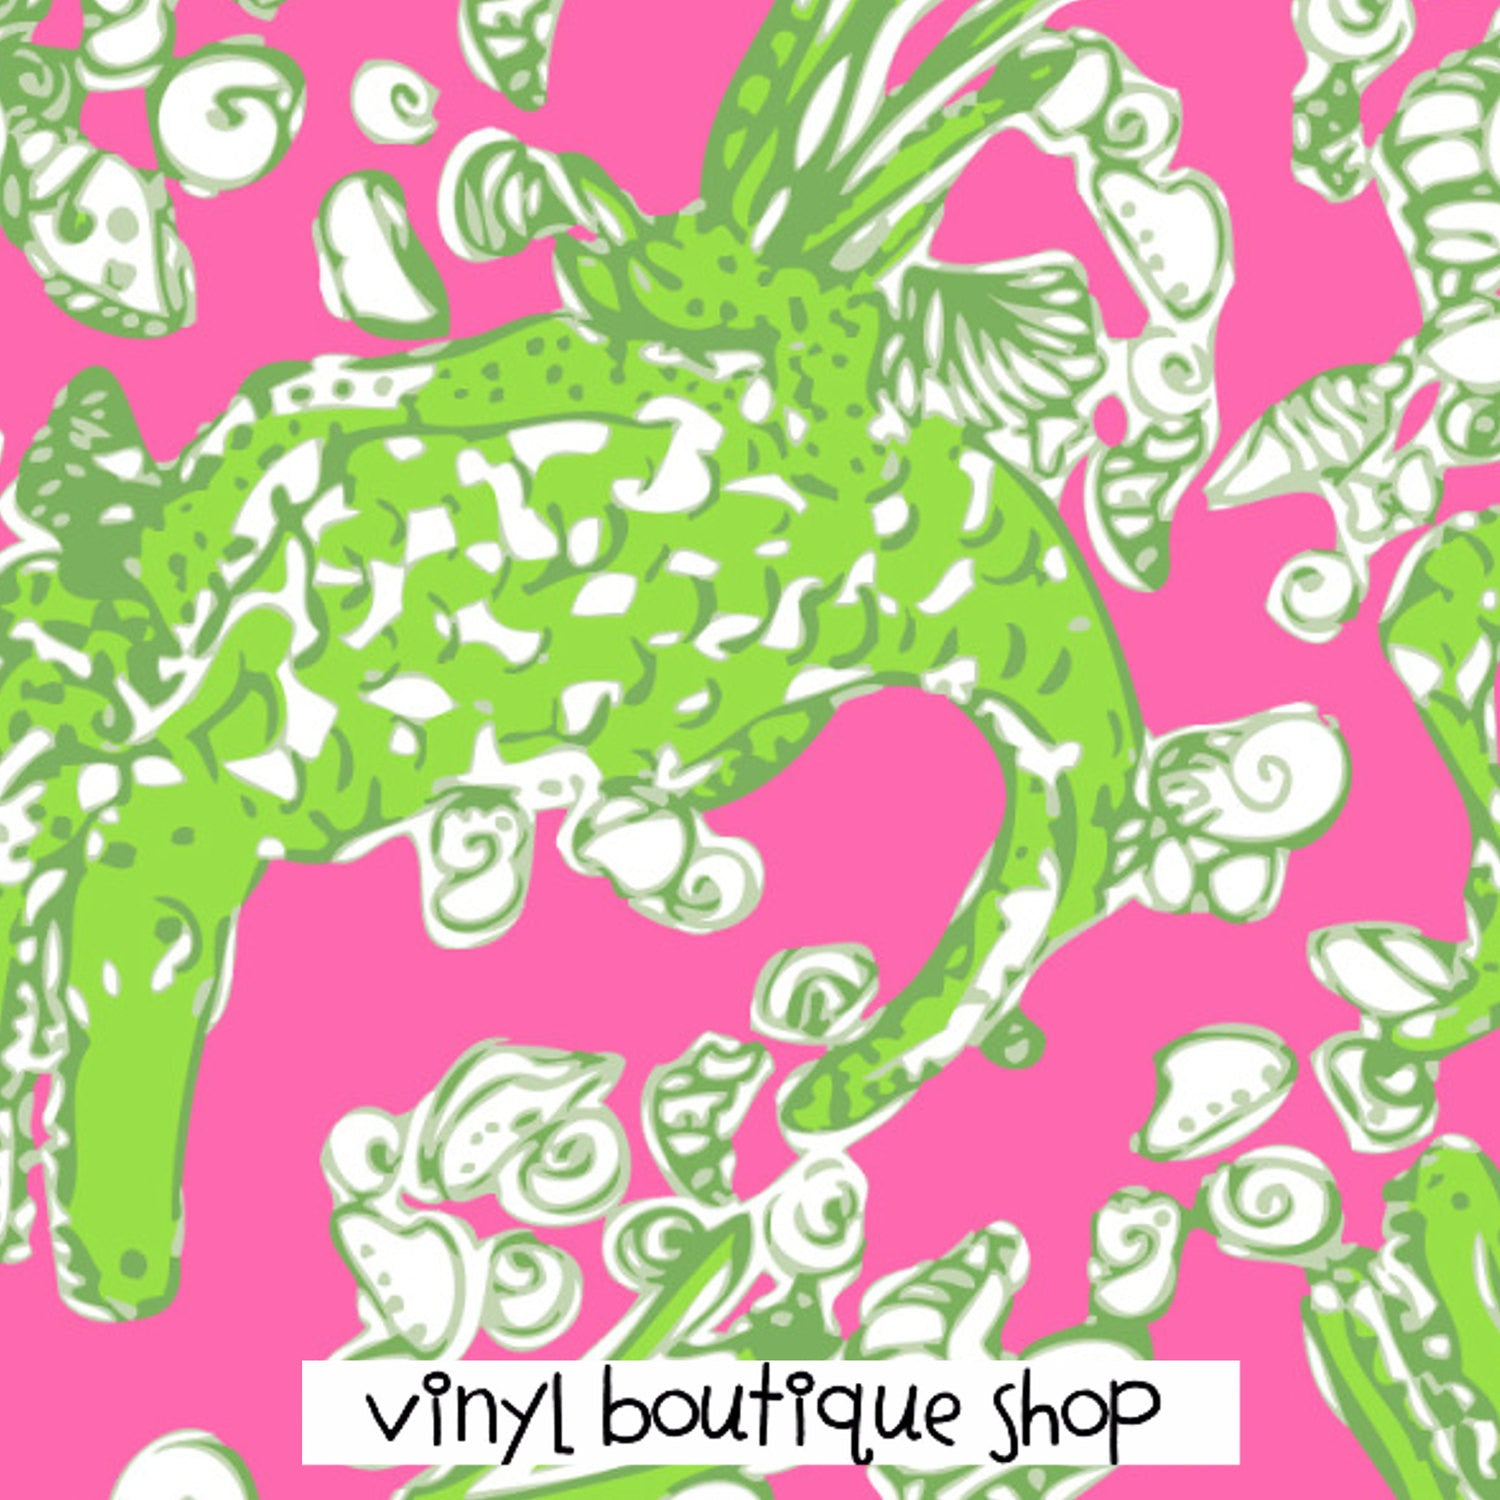 Green Lilly Inspired Printed Patterned Craft Vinyl - Vinyl Boutique Shop